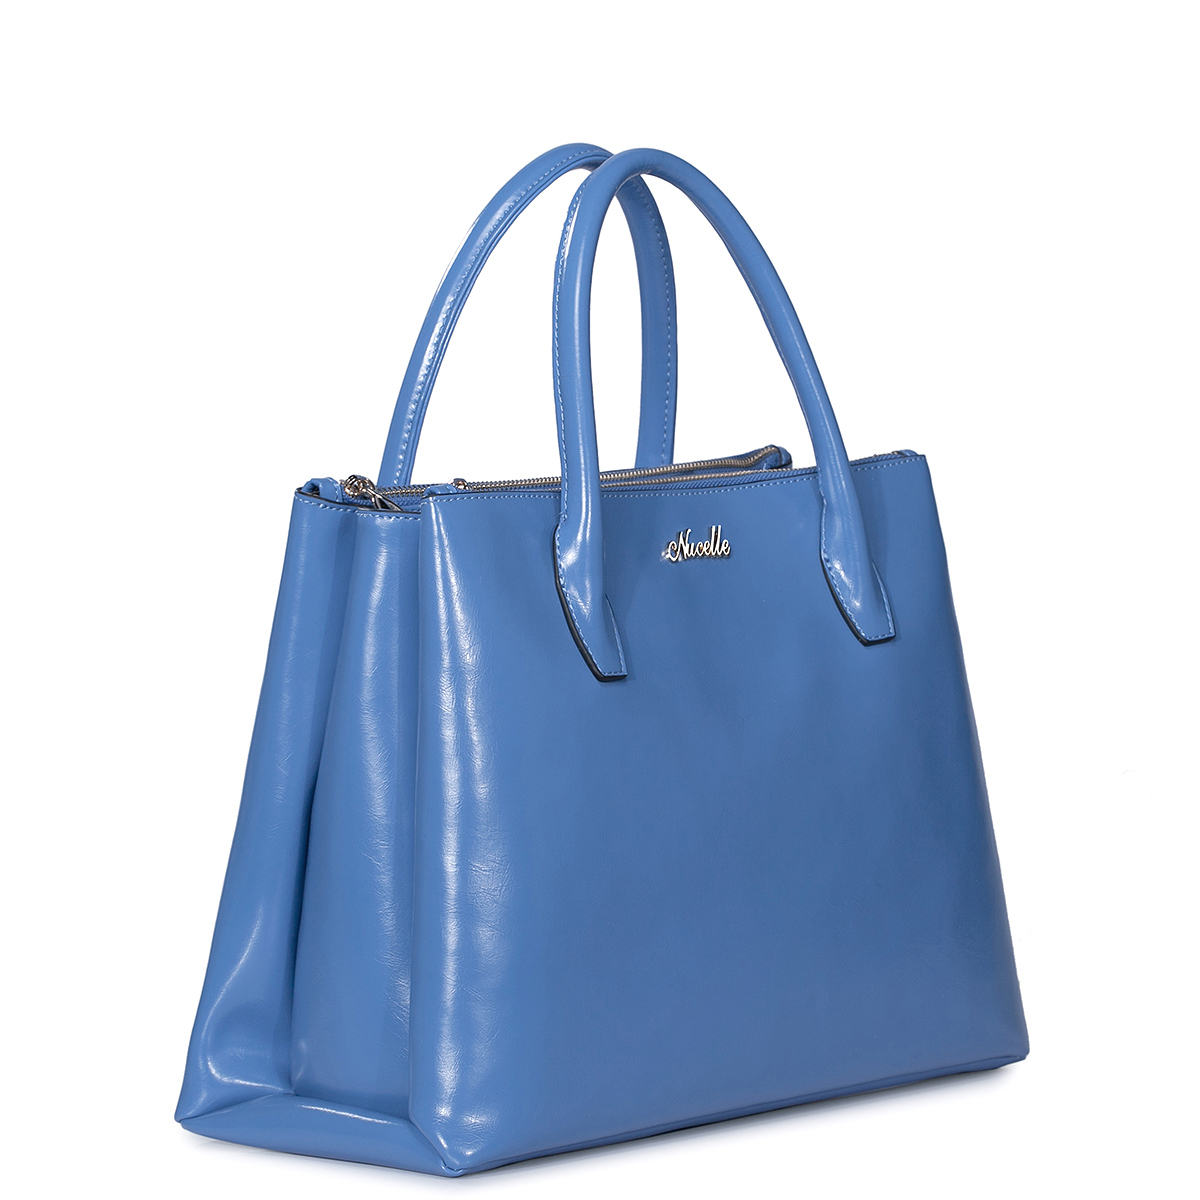 ... Bags  Tote Bags  Fashion lady tote bag 2014 designer handbag Blue